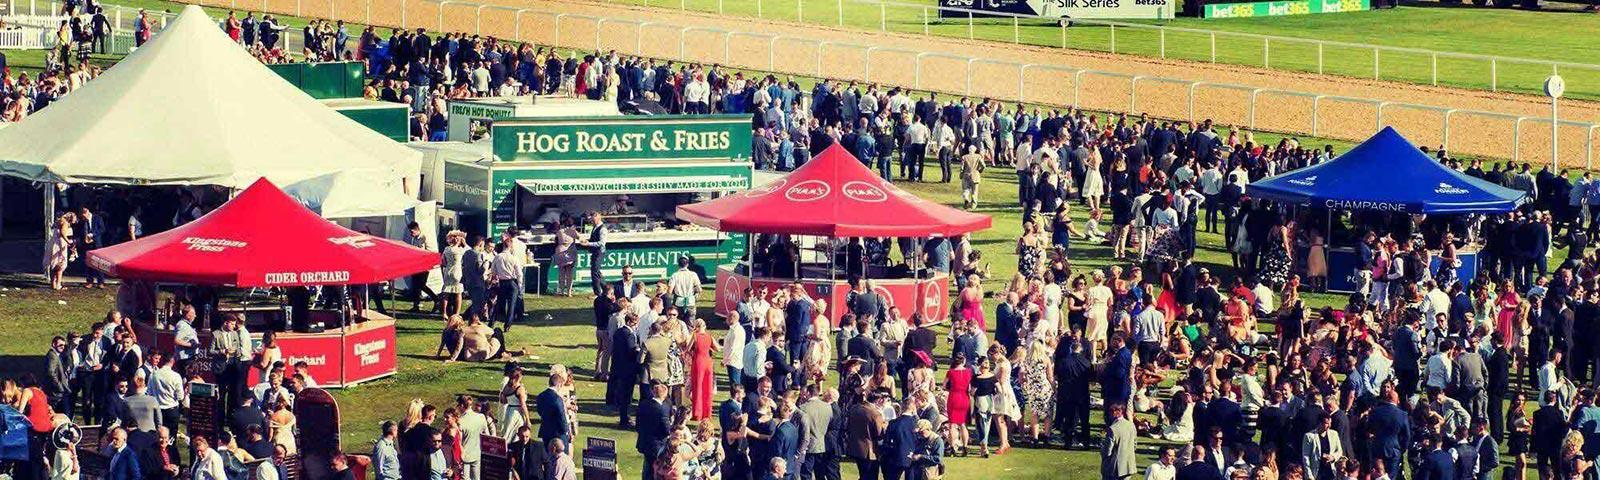 Crowds gathered around bars and food stands at Newcastle Racecourse during a raceday.